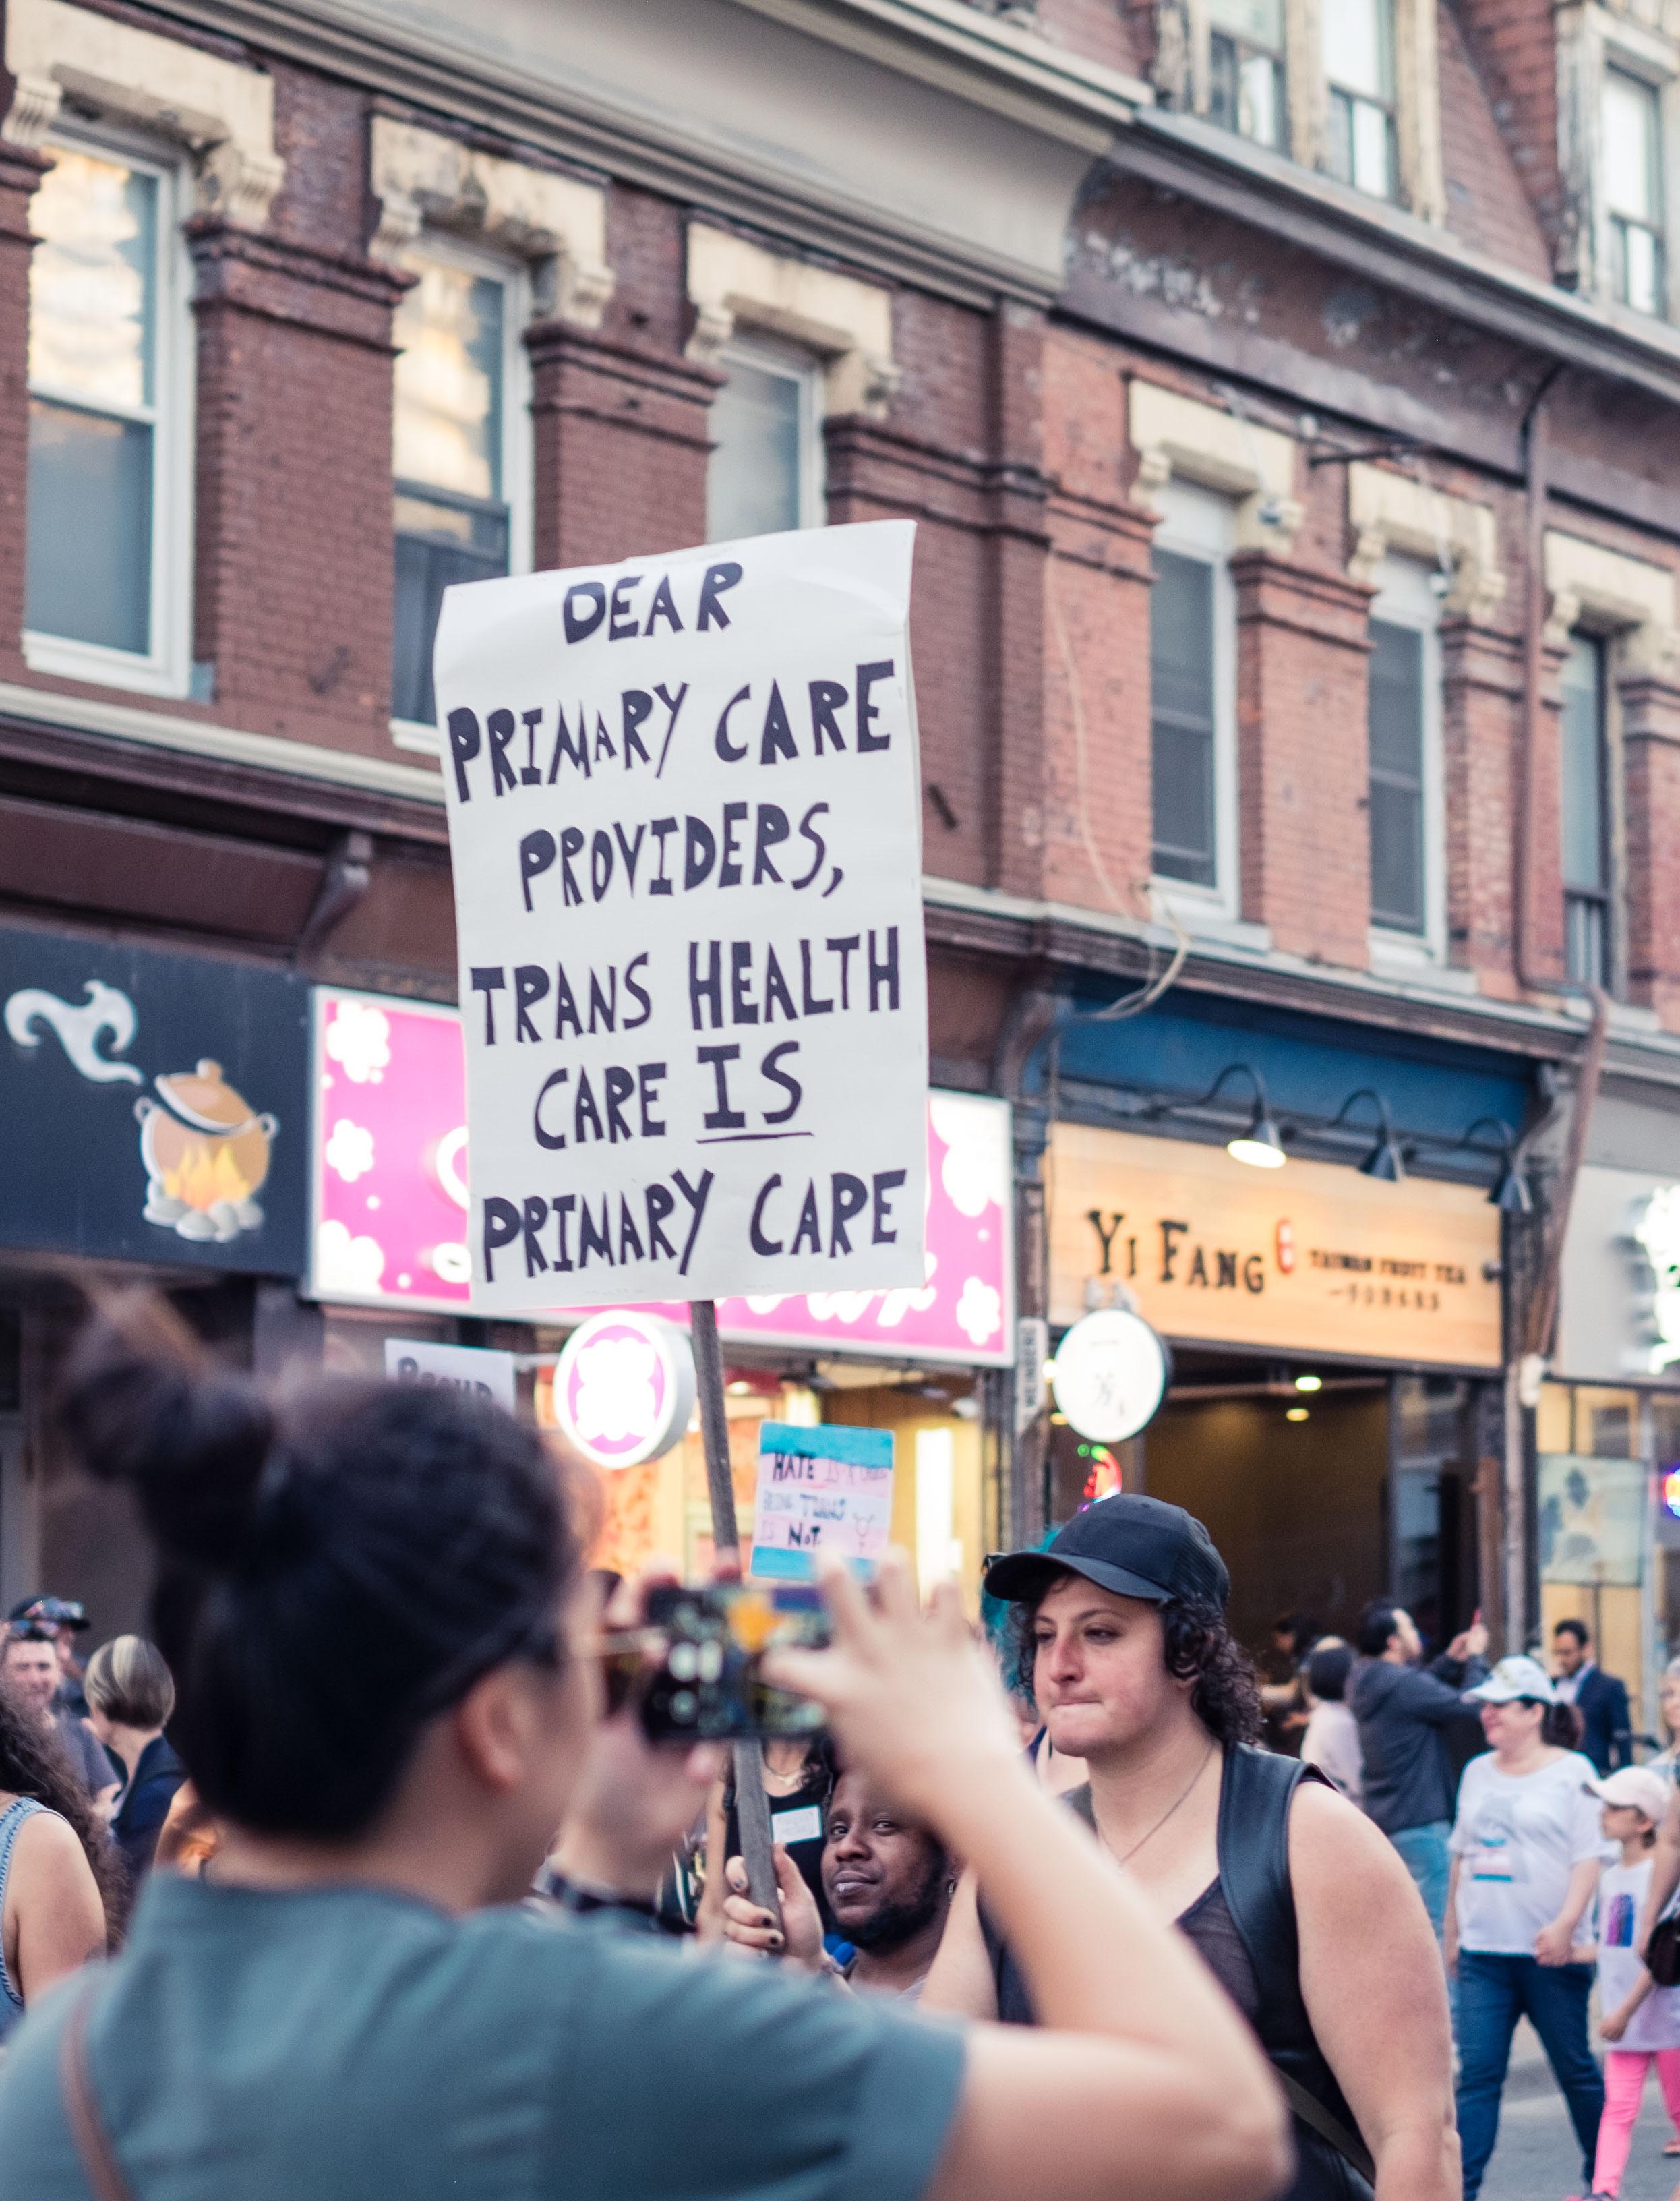 trans health care is primary care